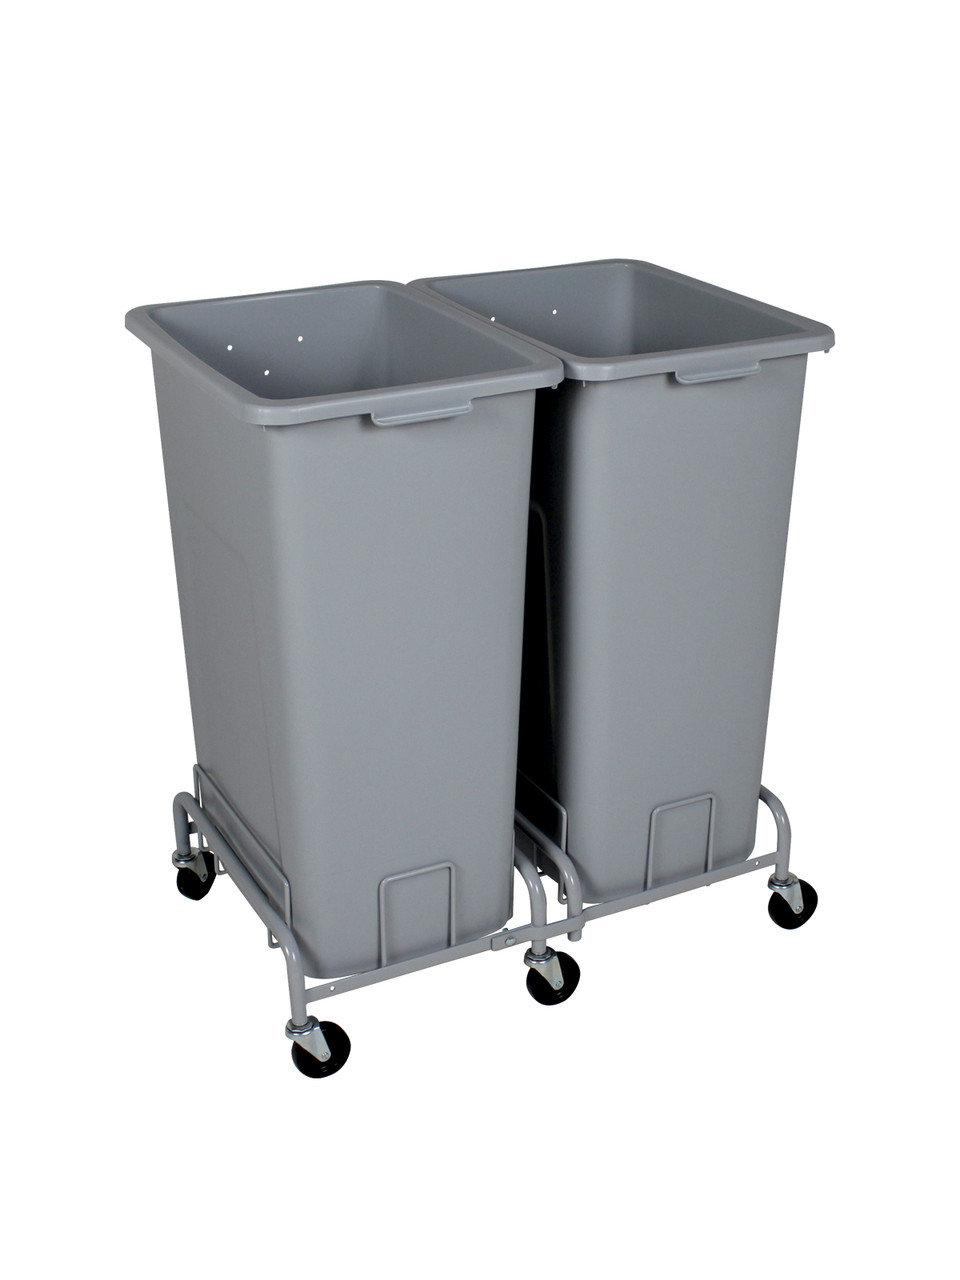 64 Gallon Plastic Extra Large Trash Cans with Wheels Combo (4 Color Choices)